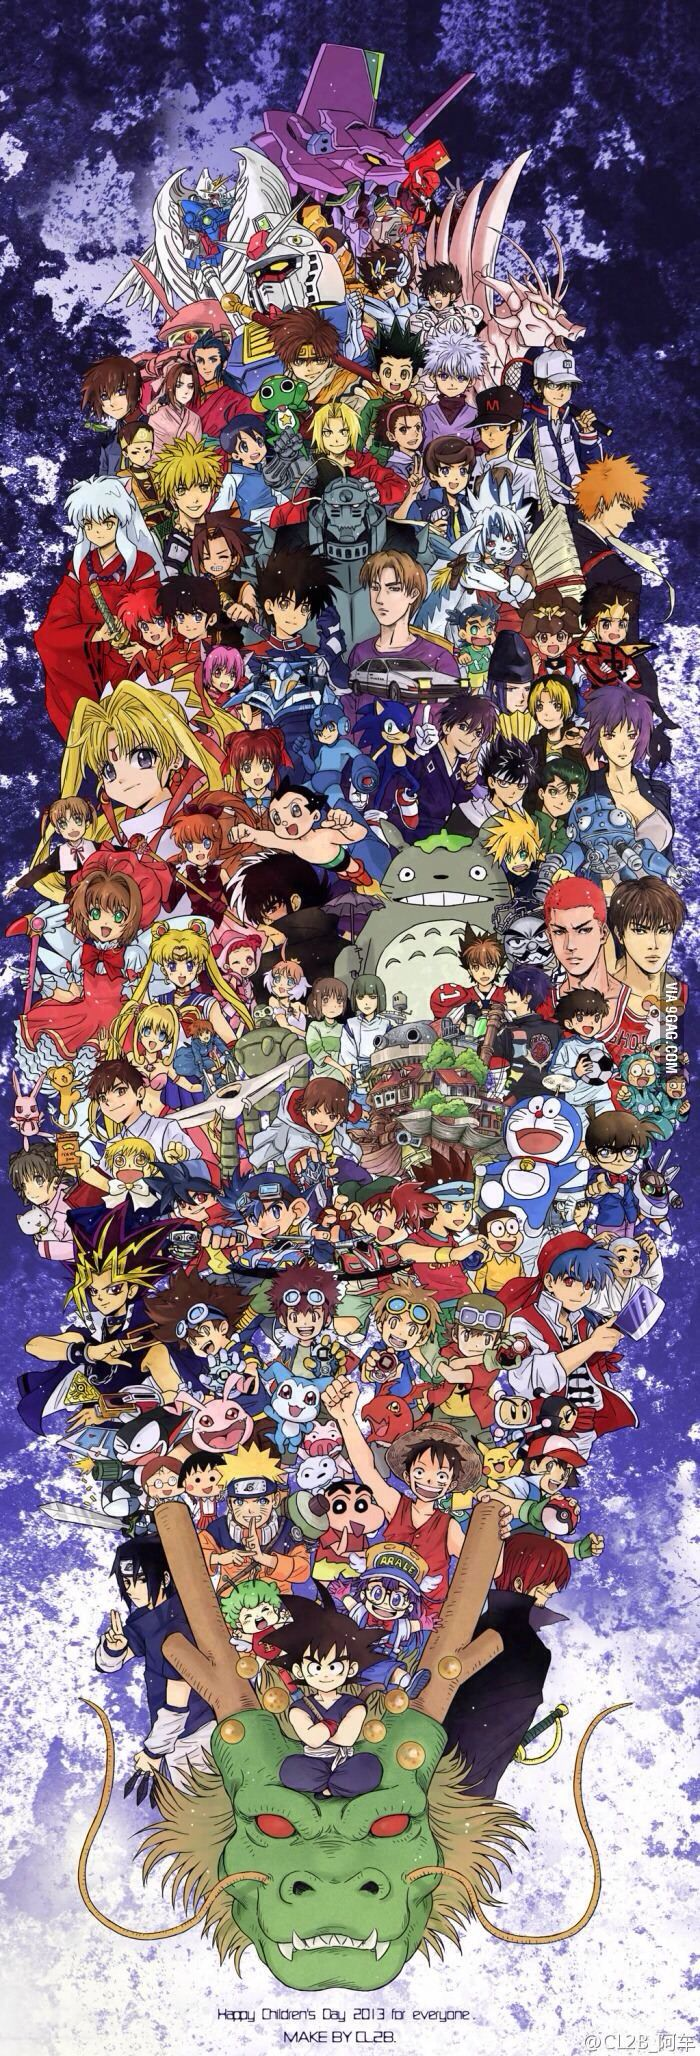 I know that I am a bit of a nerd but even I was surprised at how many of the characters I know and how many of the anime I have watched.